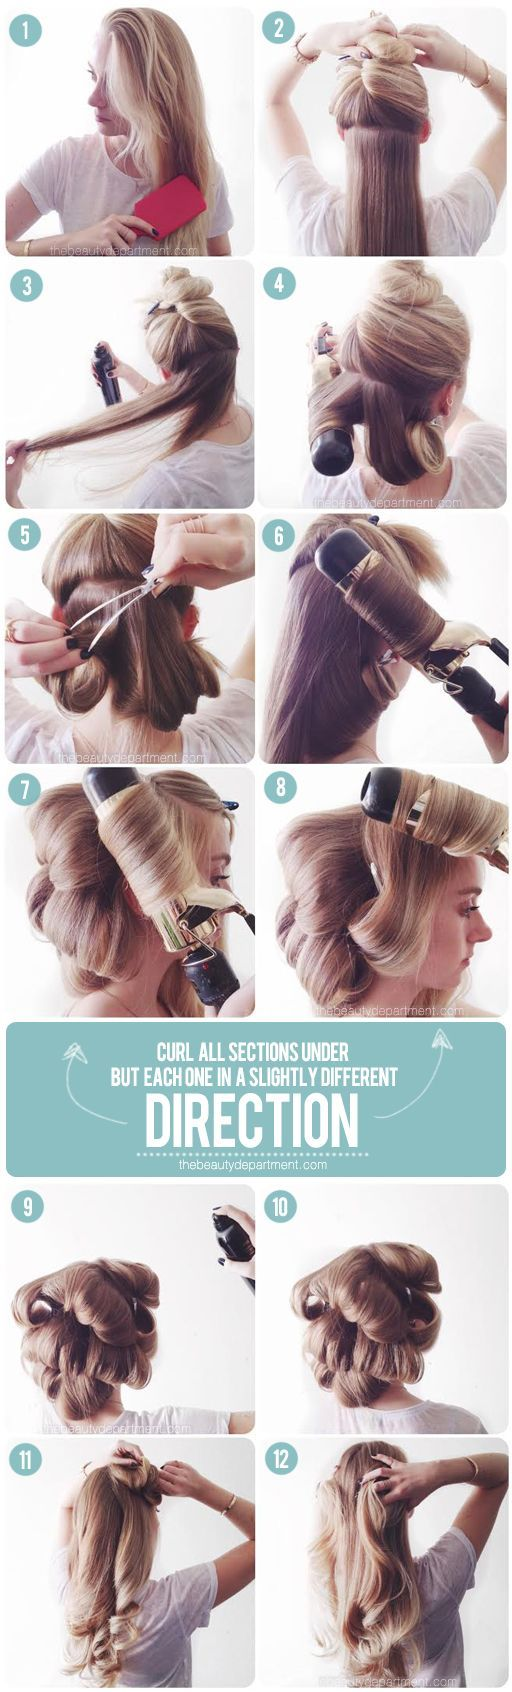 Faking a professional #blowdry #tutorial ❤️ via The Beauty Department ❤️ http://meikkibeibi.blogspot.fi